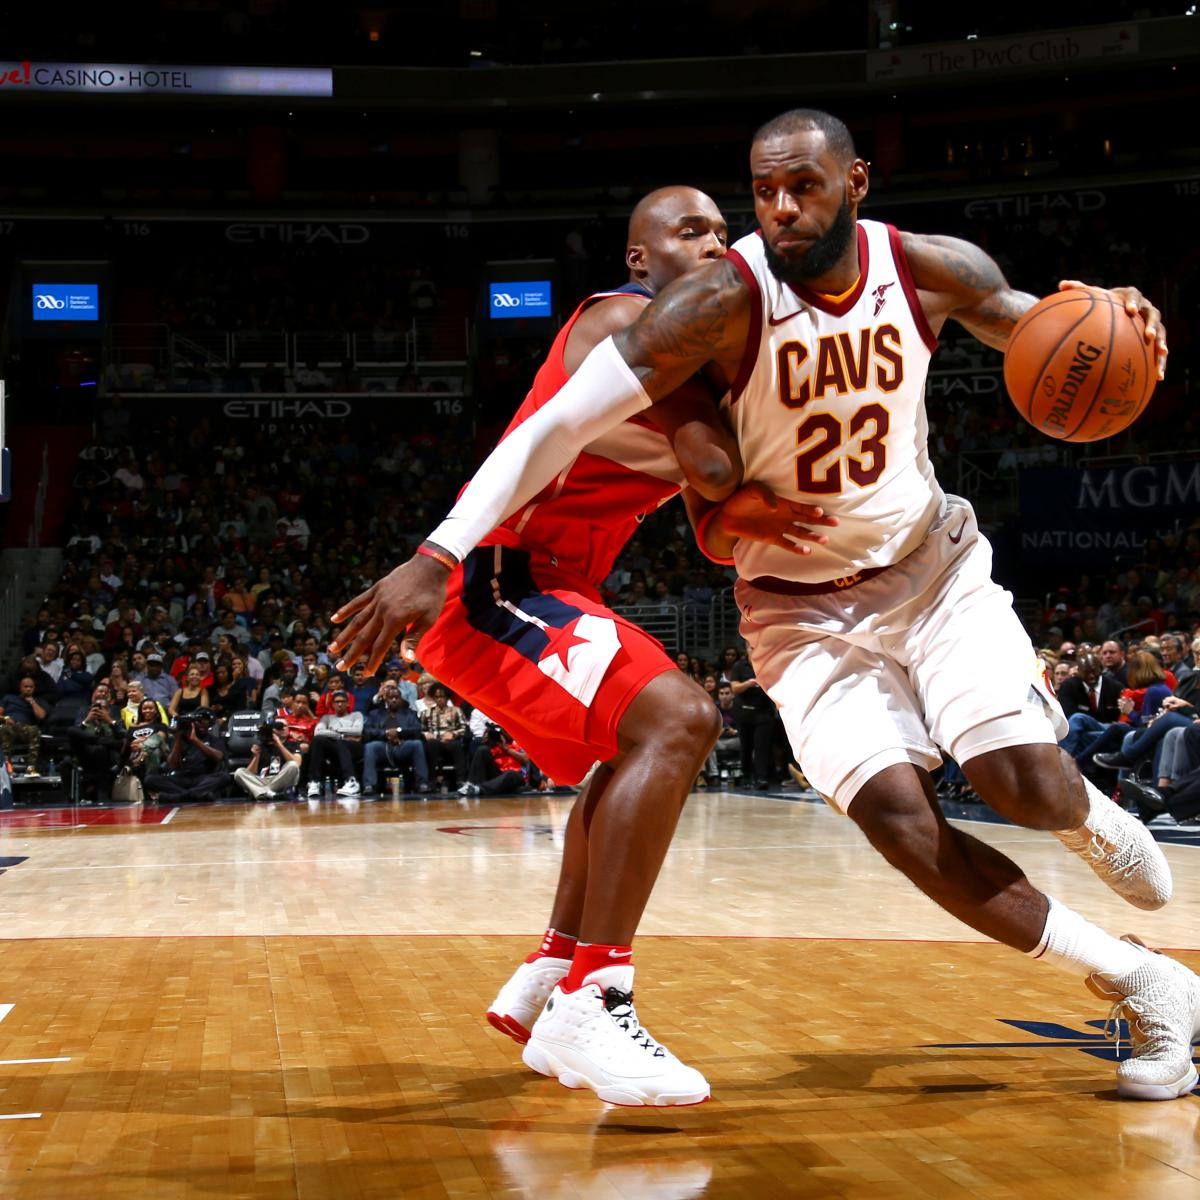 e409066eff67 LeBron James  57 Points Lead Cavaliers to Win over John Wall ...